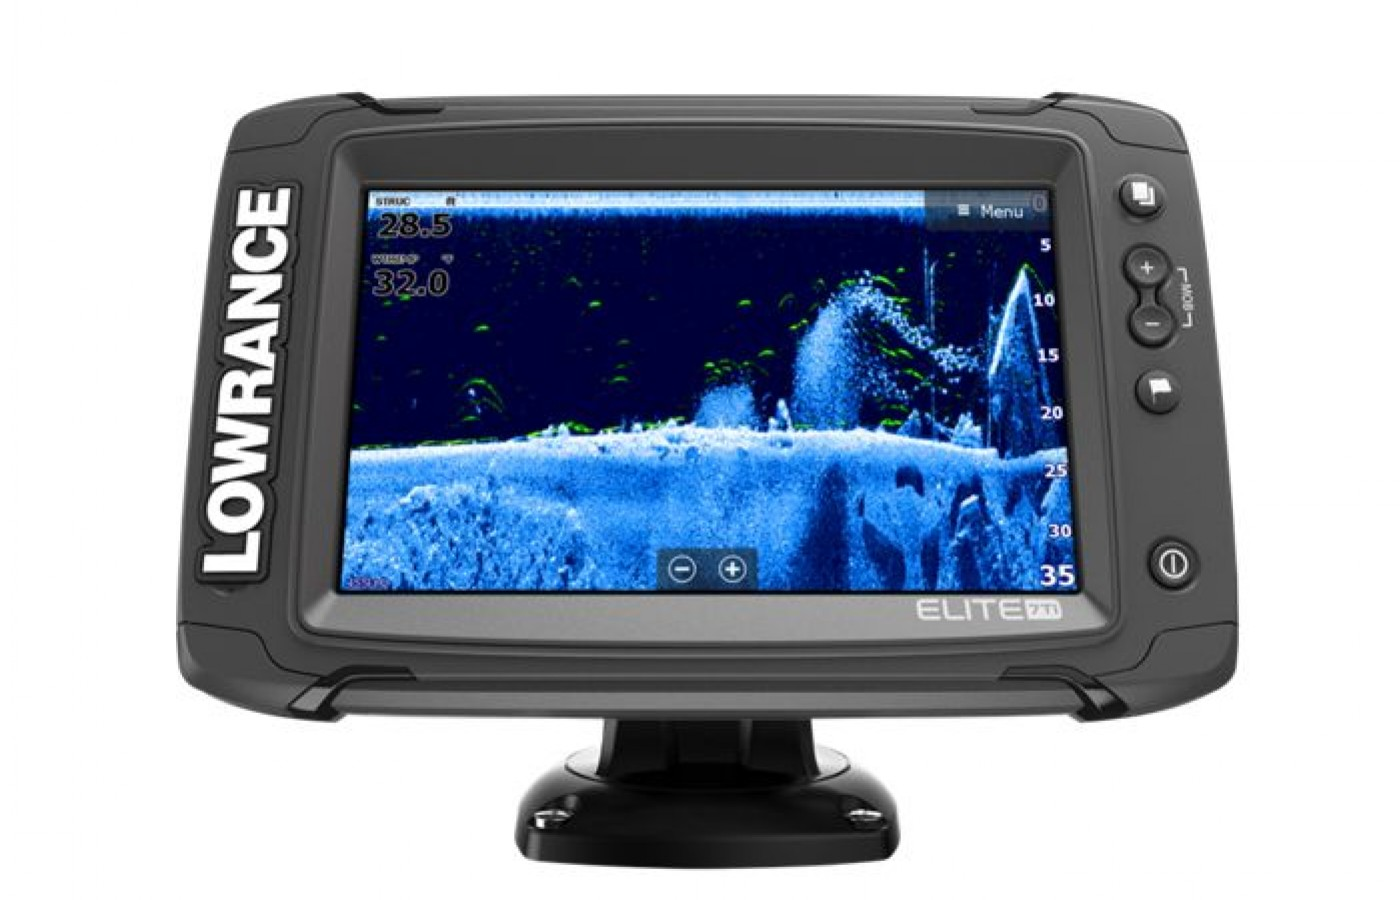 The Lowrance Elite 7 TI also offers an LED-blacklit touch screen display.